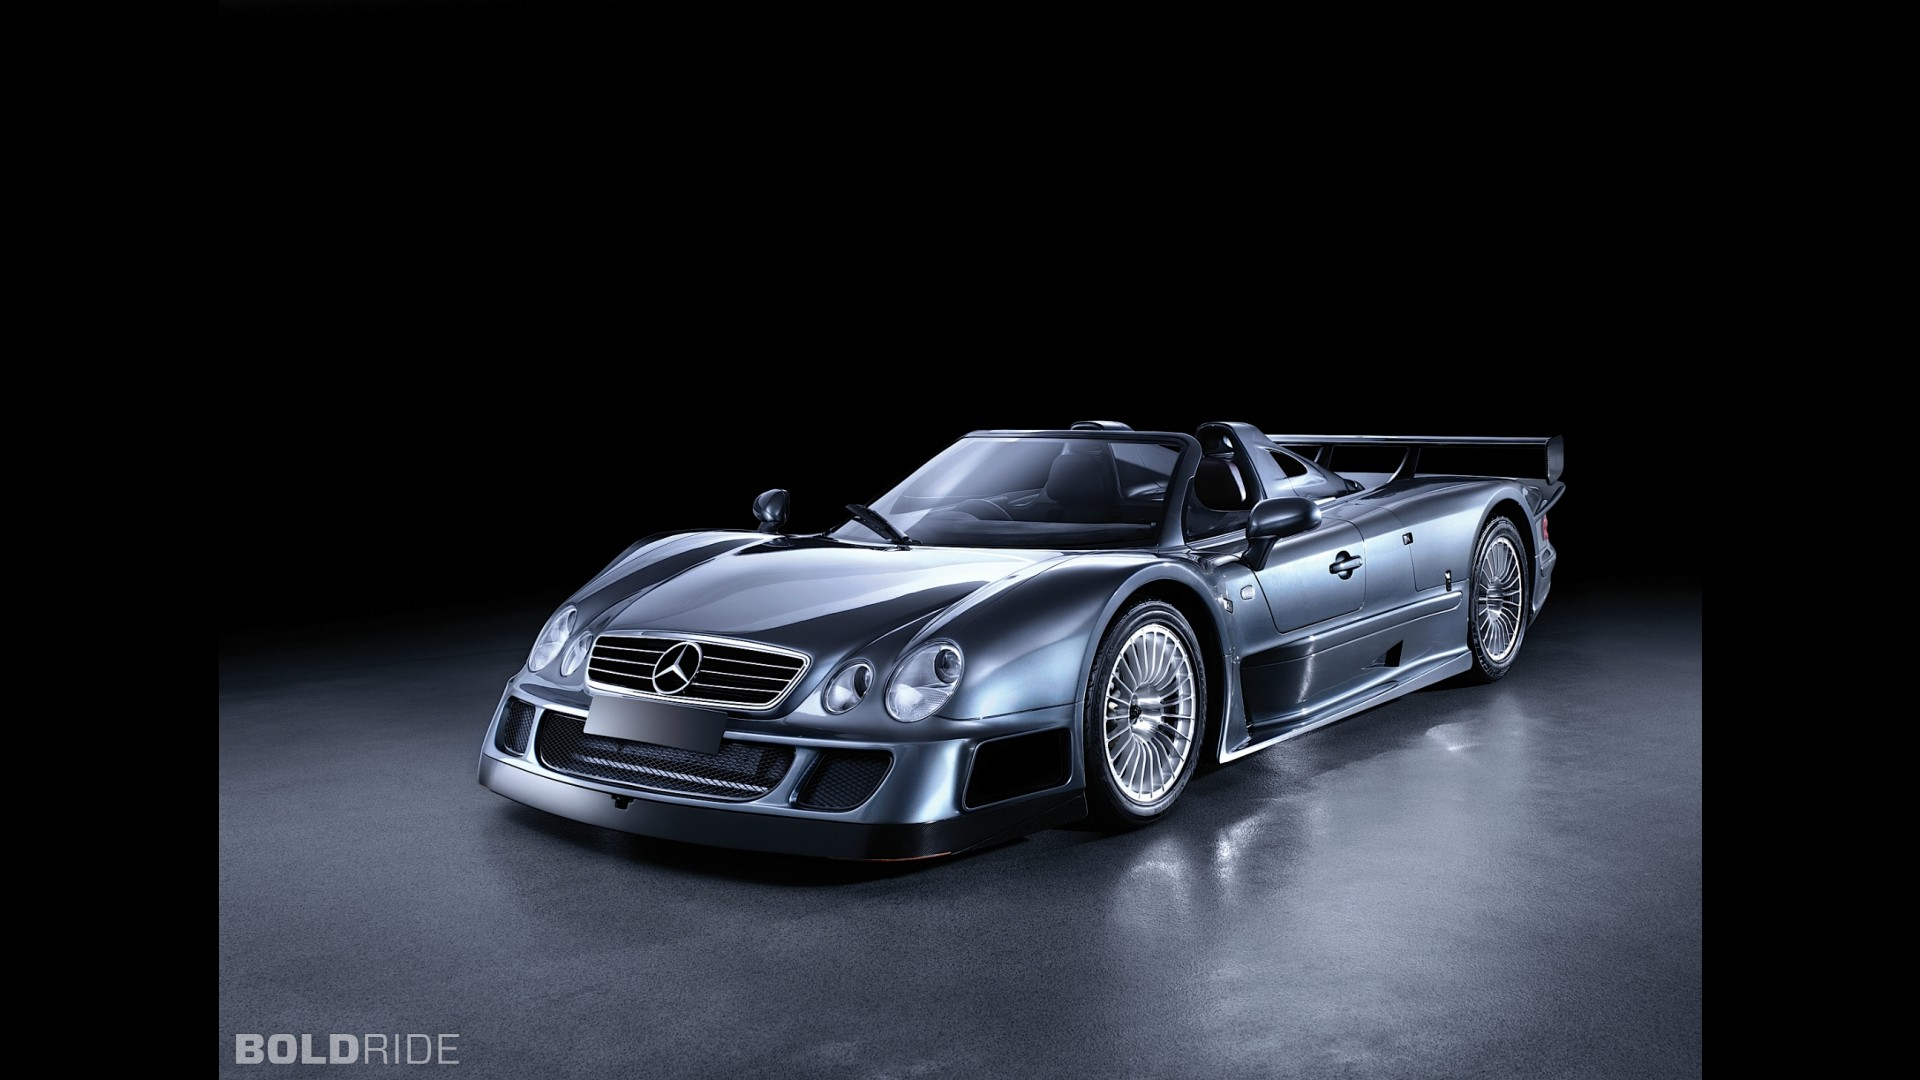 clk gtr amg. Black Bedroom Furniture Sets. Home Design Ideas